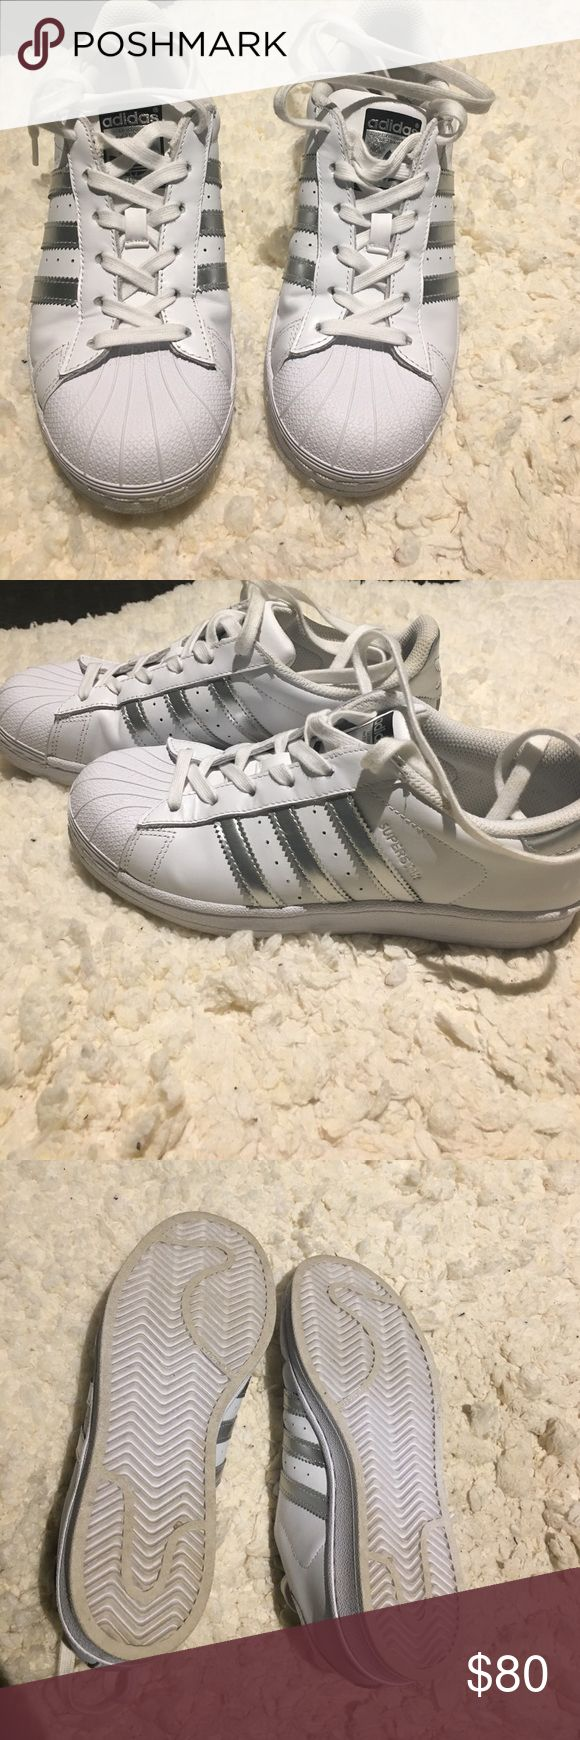 Adidas superstars original Slightly/hardly used and never worn. Great pristine condition. Only good offers accepted. Silver ad no box size 6 adidas so normally a size 7. Tagged 7 because that's what they fit. All offers accepted Adidas Shoes Sneakers